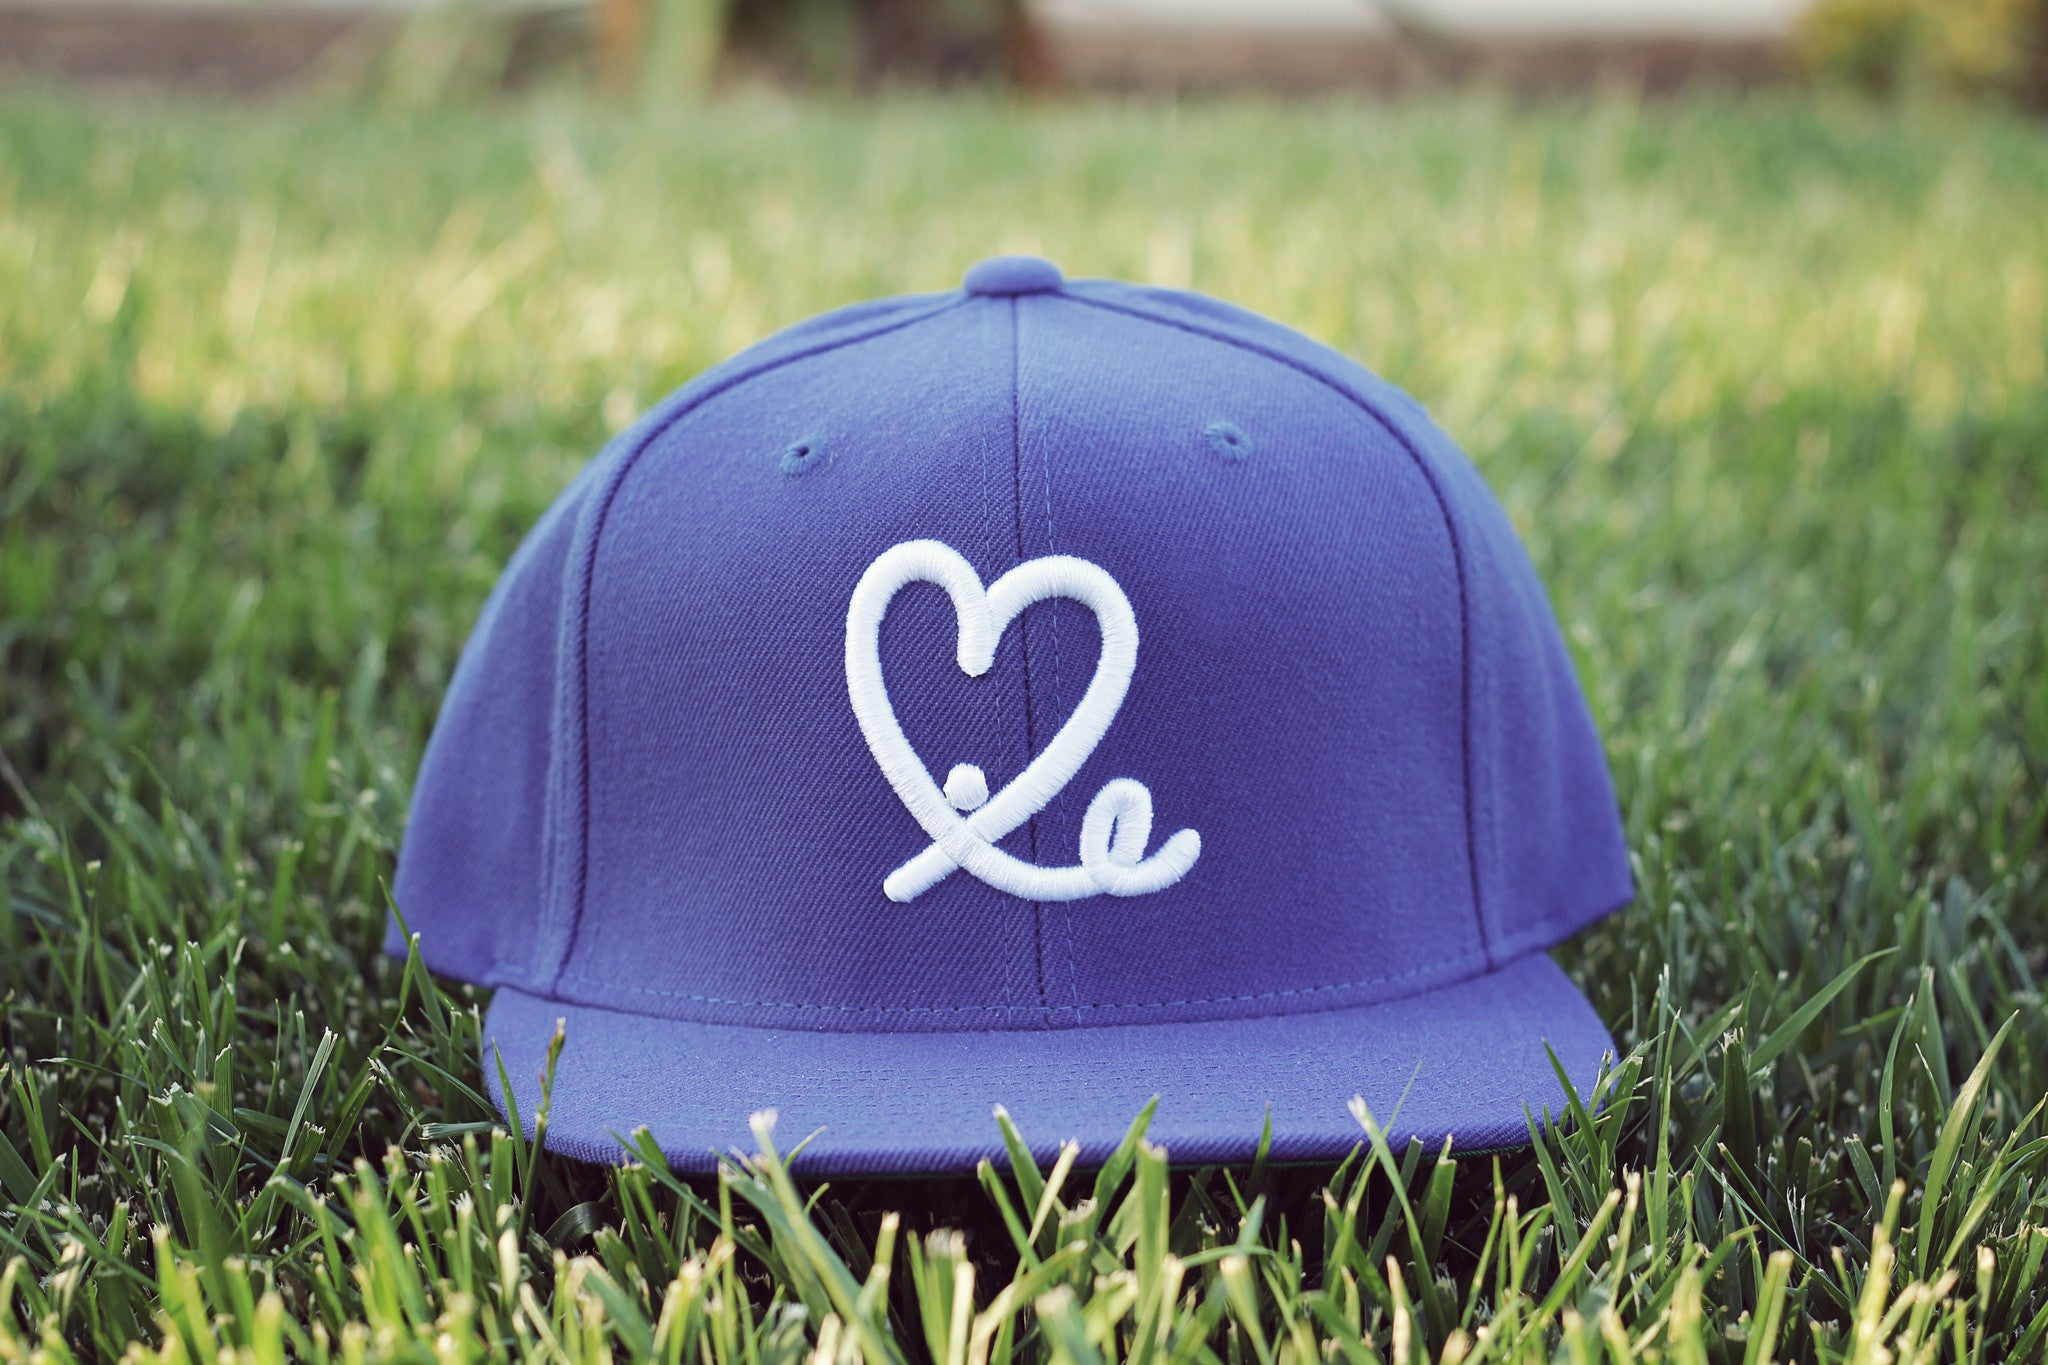 1LoveIE Snapback (Royal Blue /White)